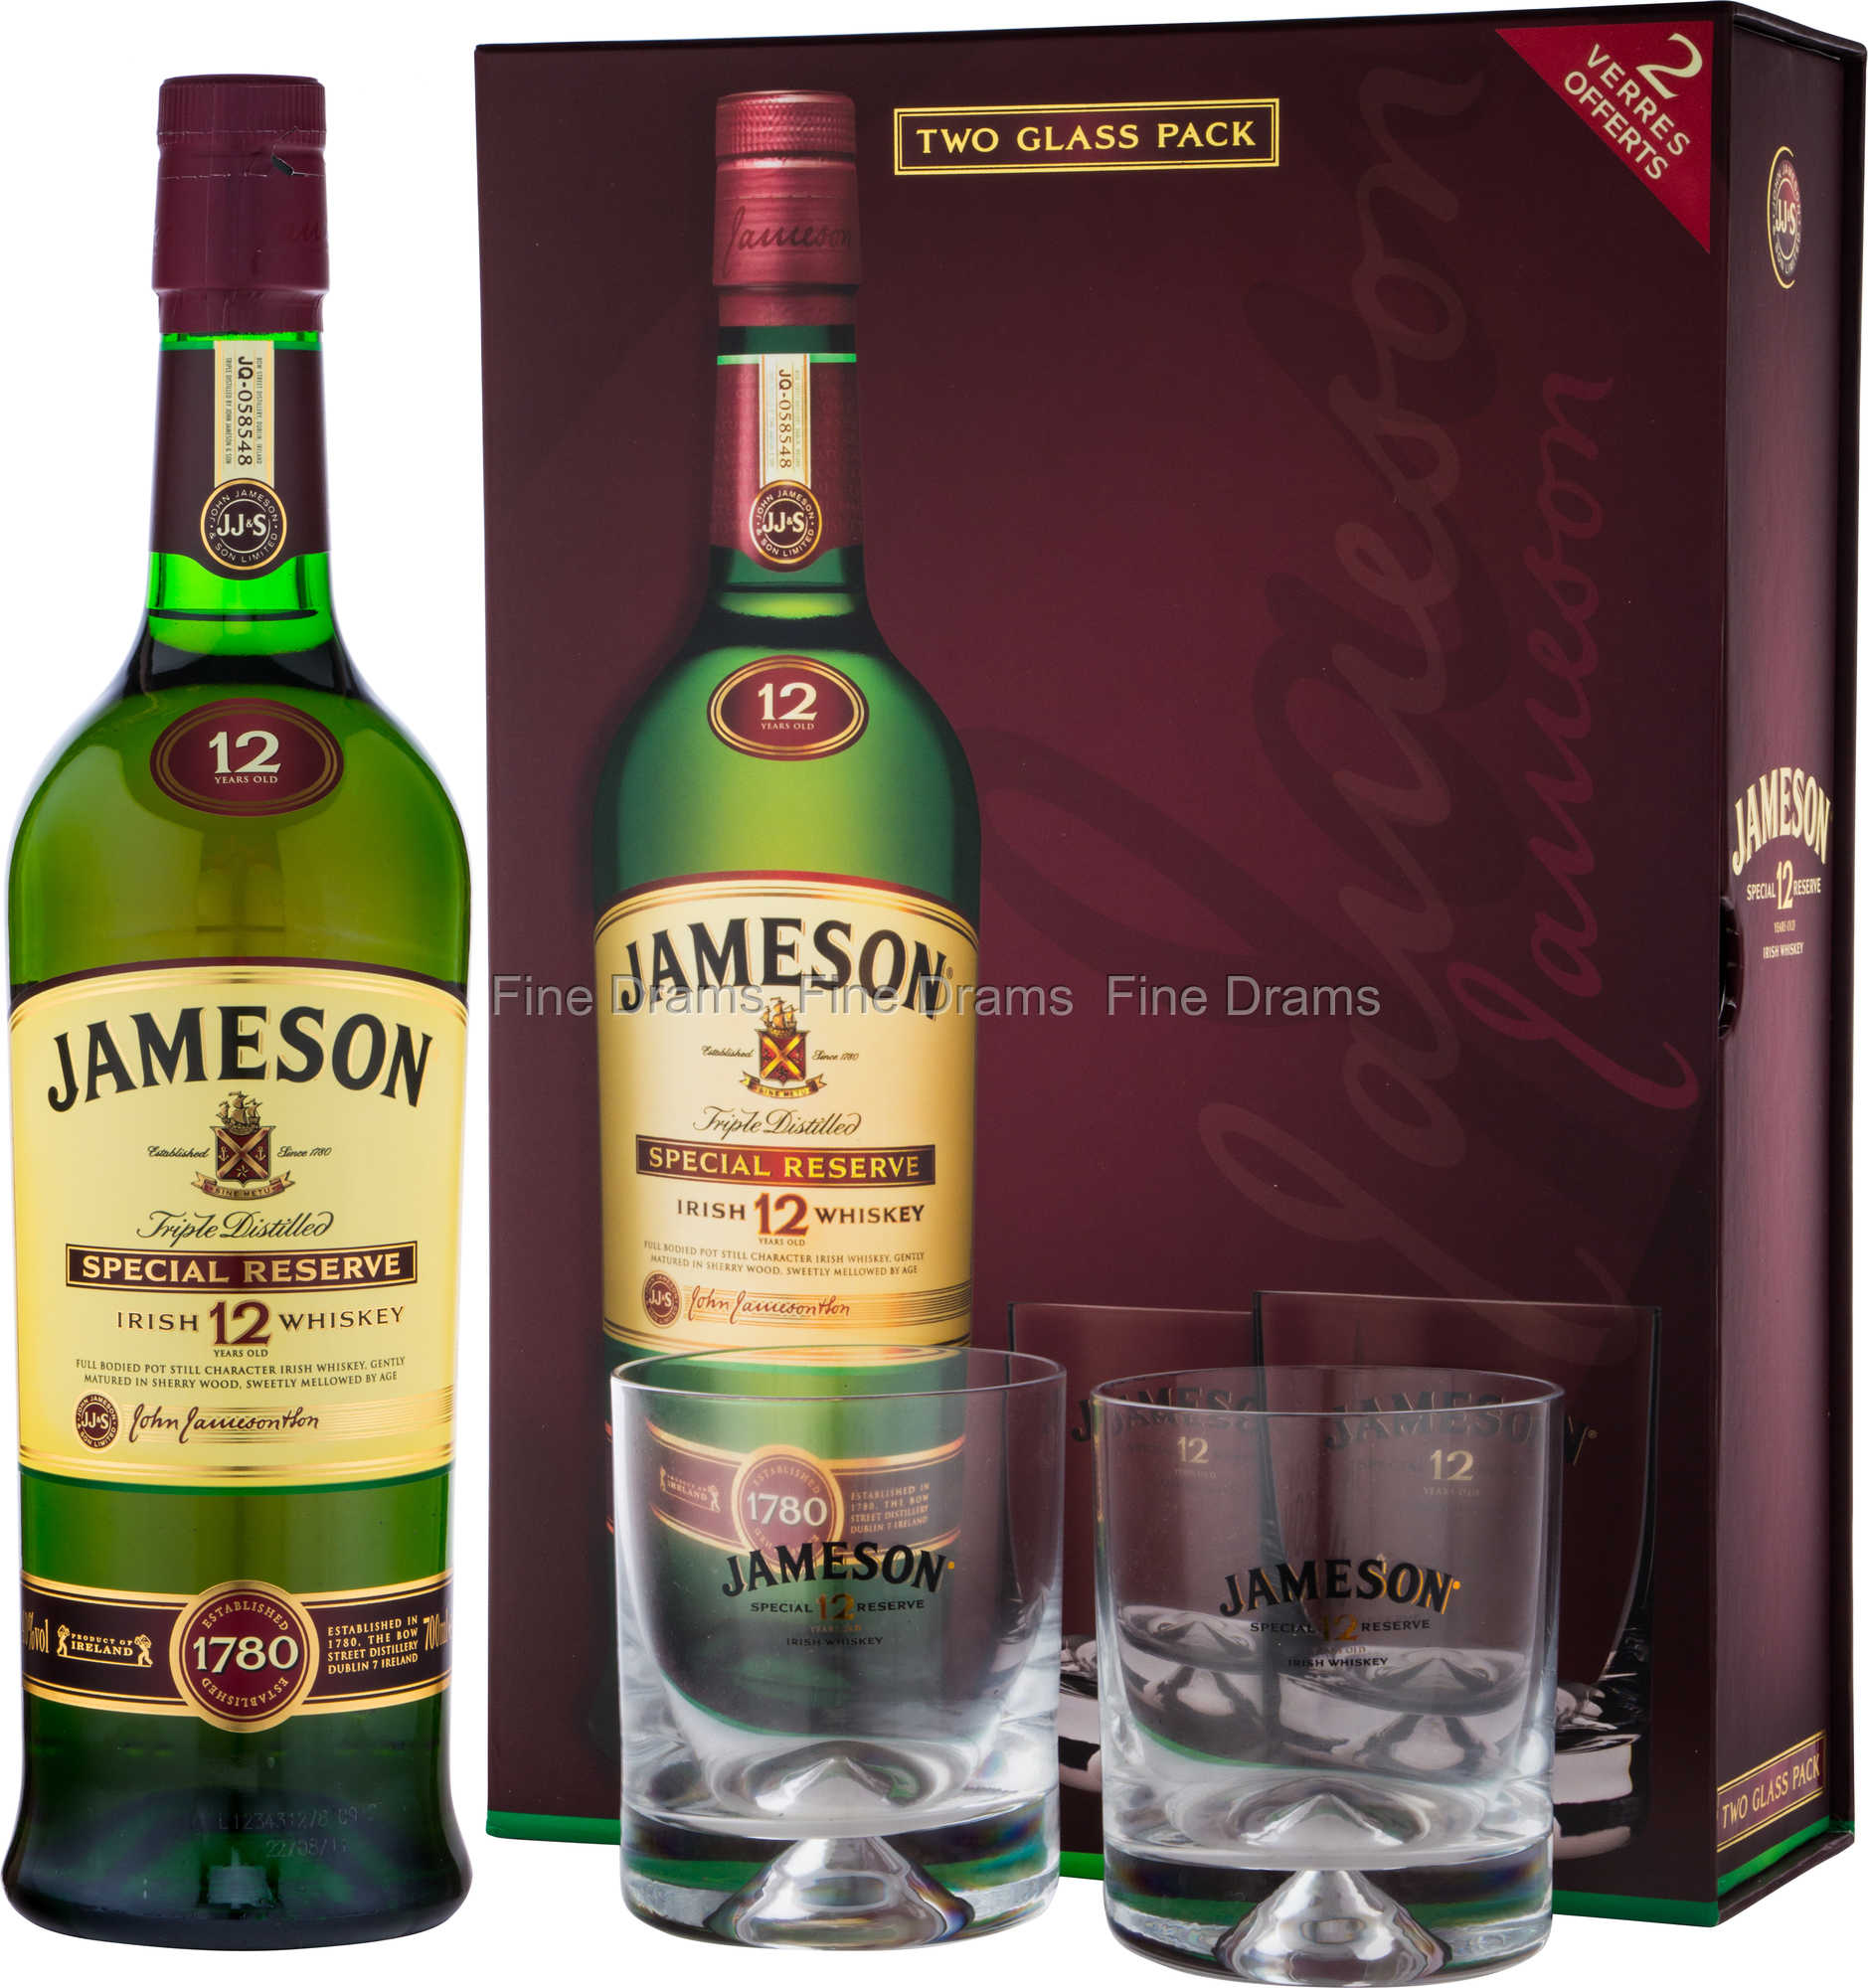 Jameson 12 Year Old Whisky Gift Pack